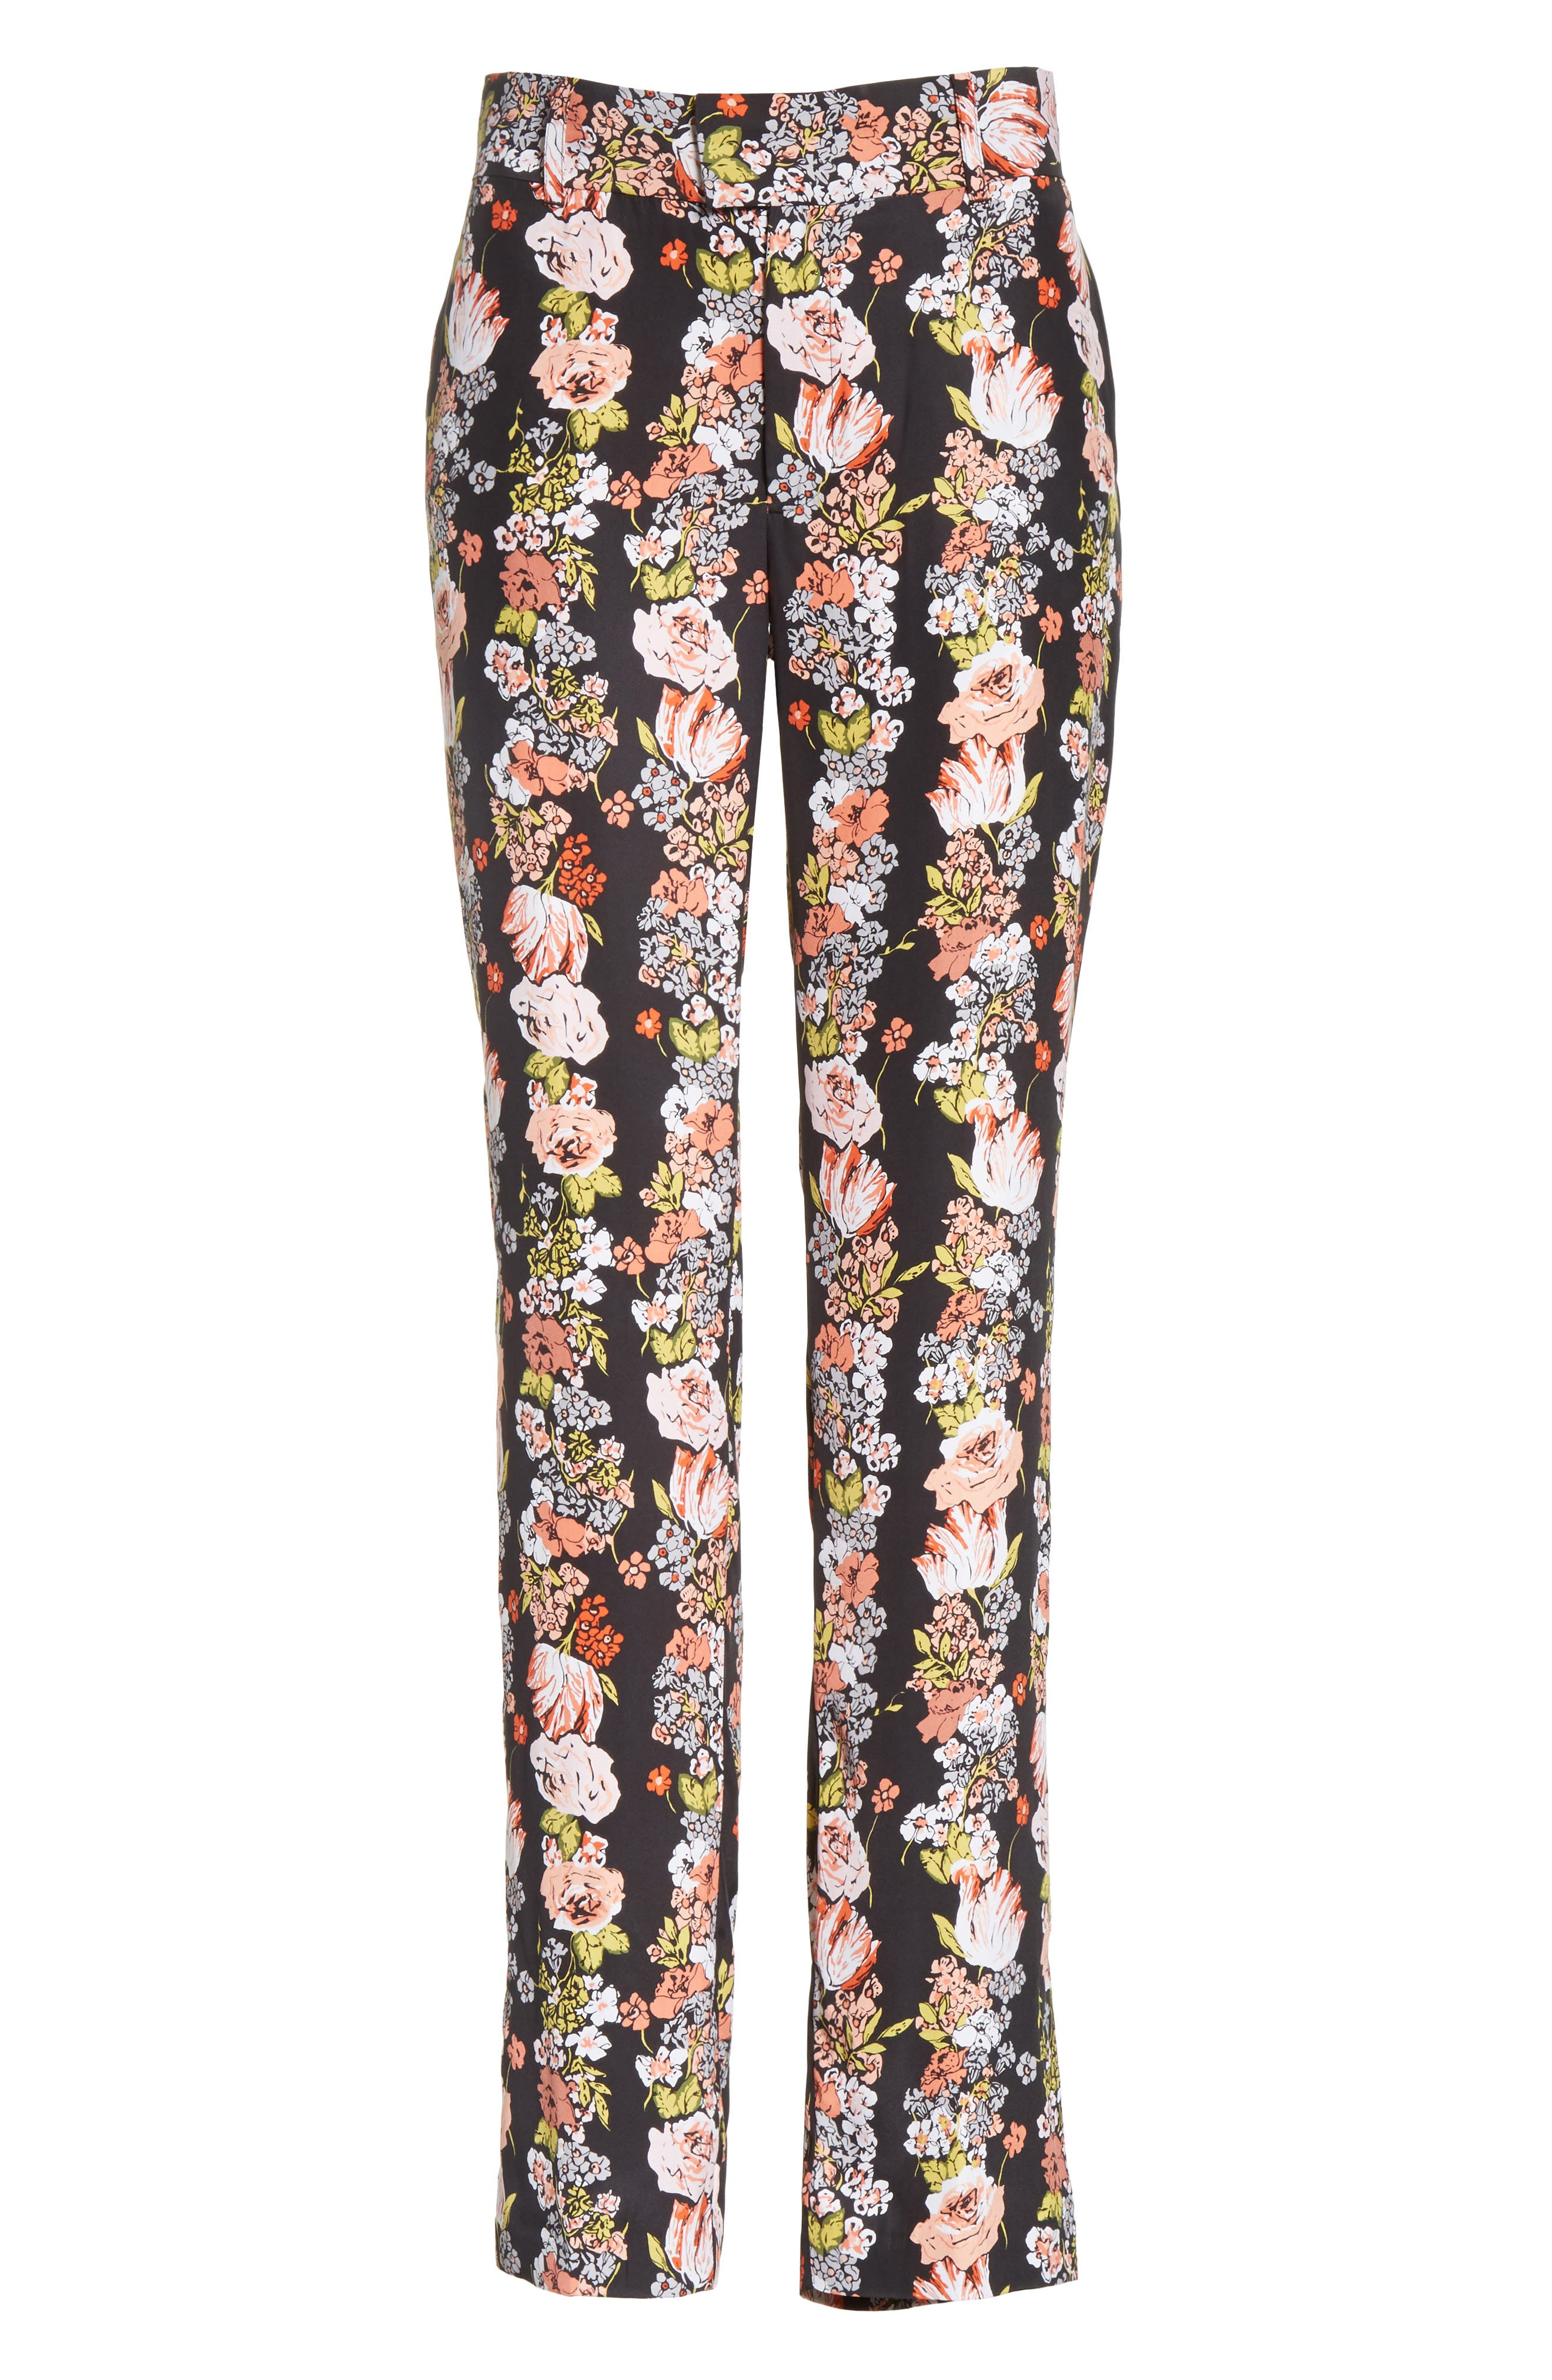 Florence Floral Silk Trousers,                             Alternate thumbnail 6, color,                             006